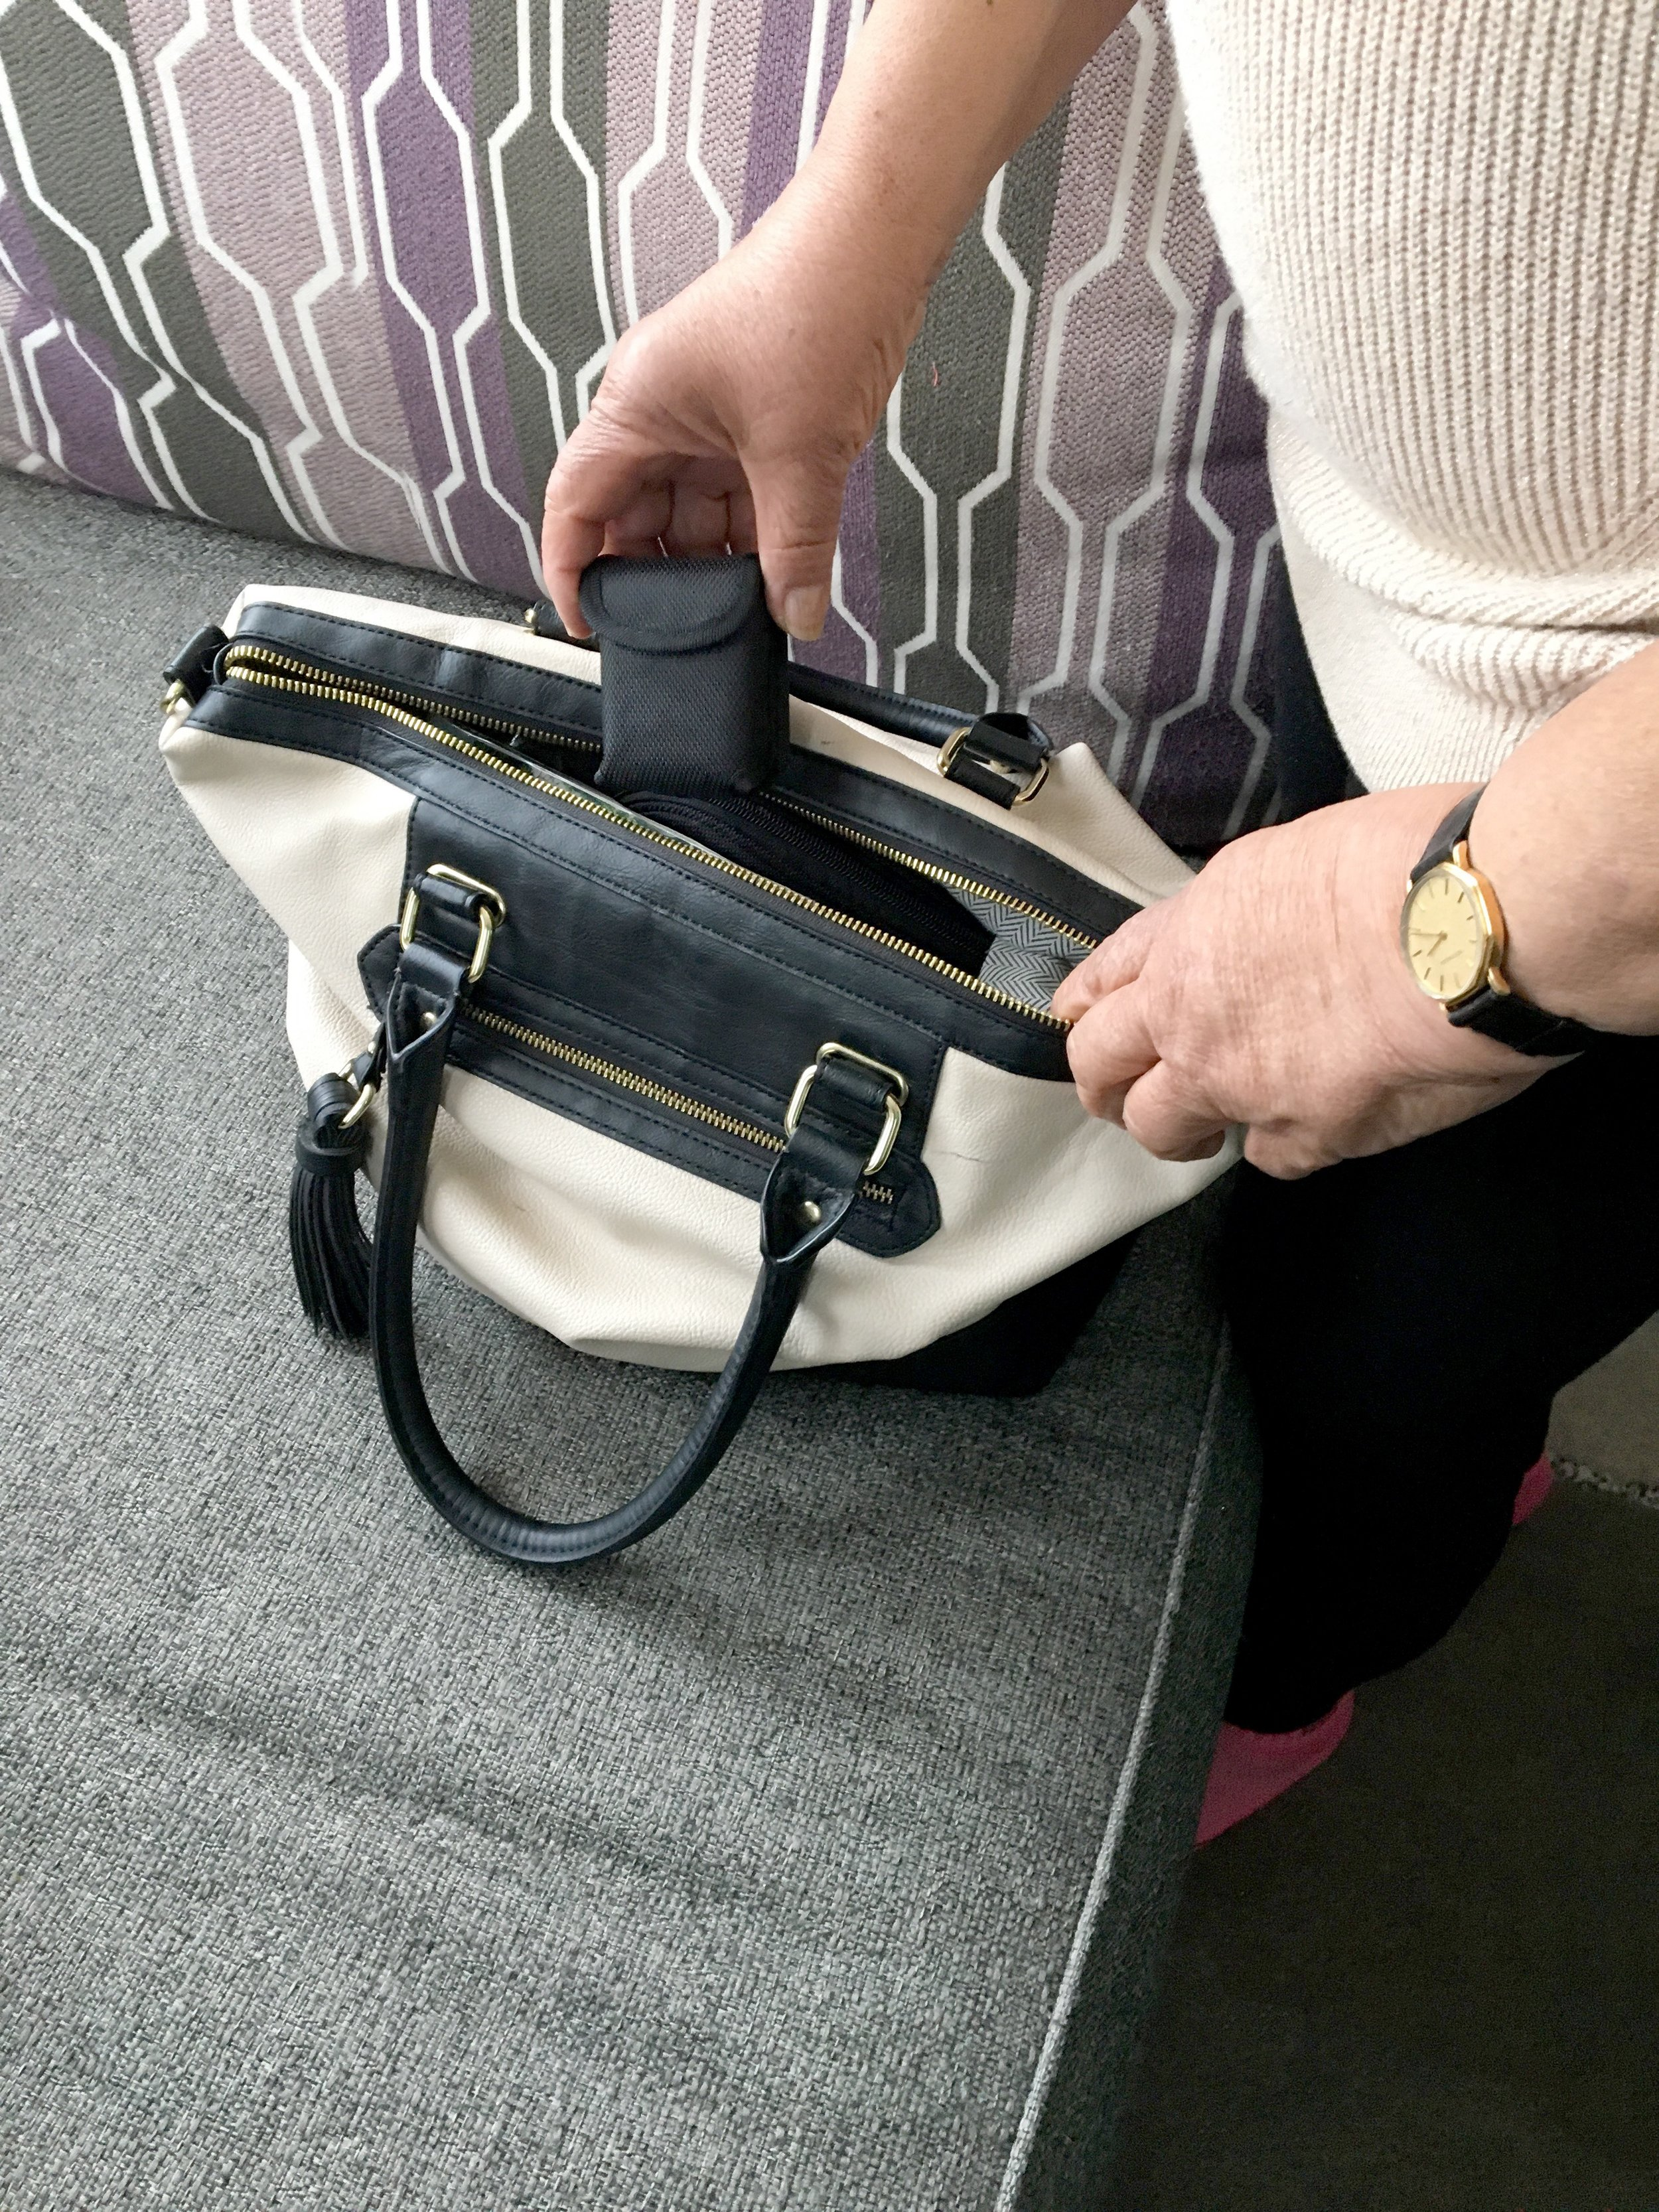 GPS pouch is discreet and easy to carry around.